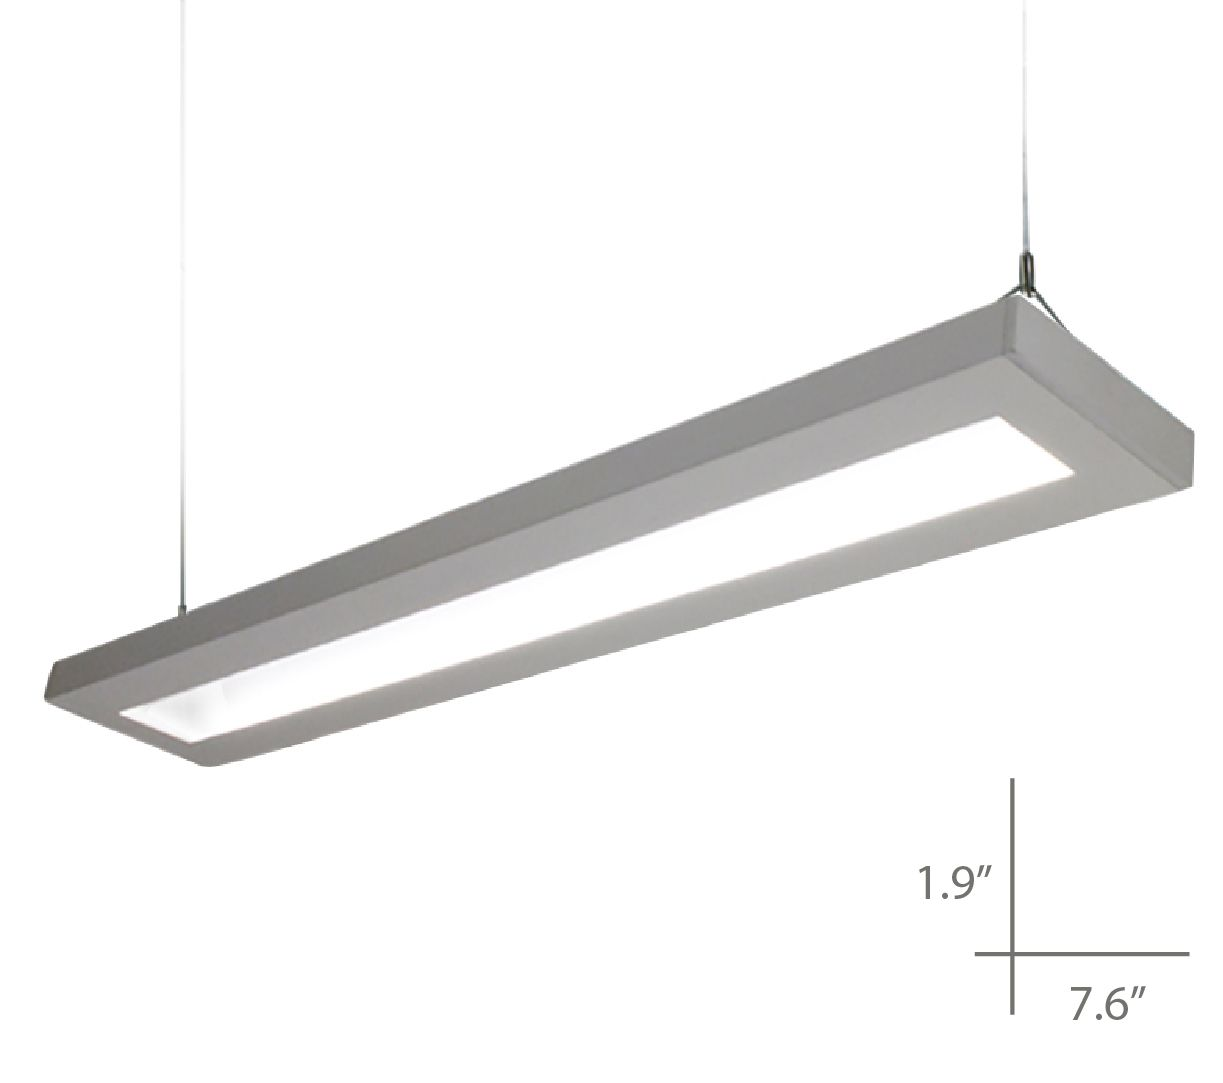 Alcon lighting 12113 8 nlp architectural led 8 foot linear suspended alcon lighting 12113 8 nlp architectural led 8 foot linear suspended pendant mount directindirect light fixture alconlighting arubaitofo Gallery